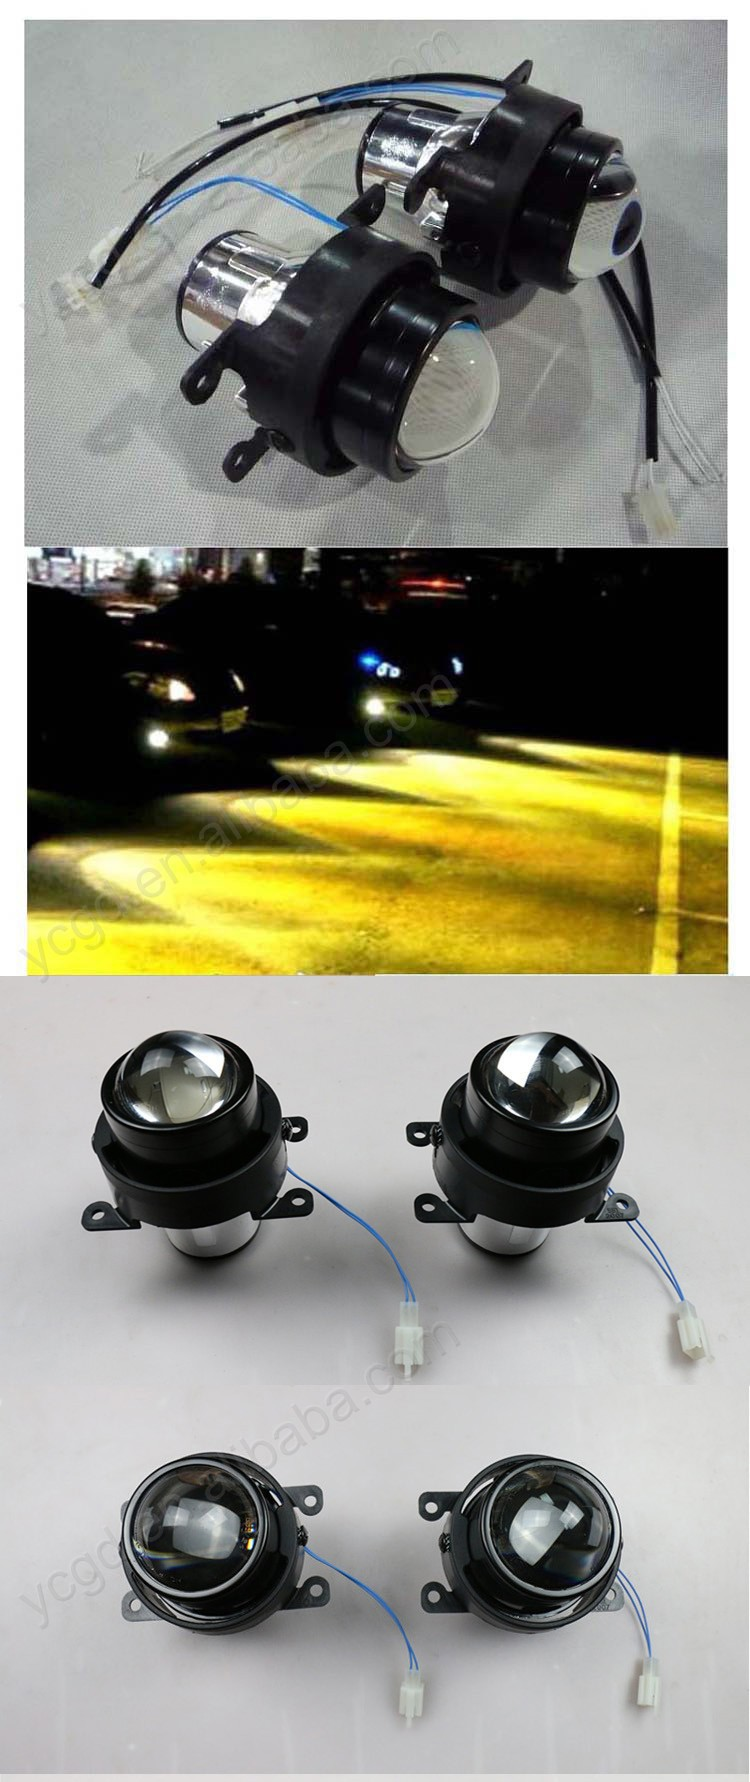 wholesaler price h1 h3 h4 h7 h8 h10 9005 9006 9007 hid projector lens